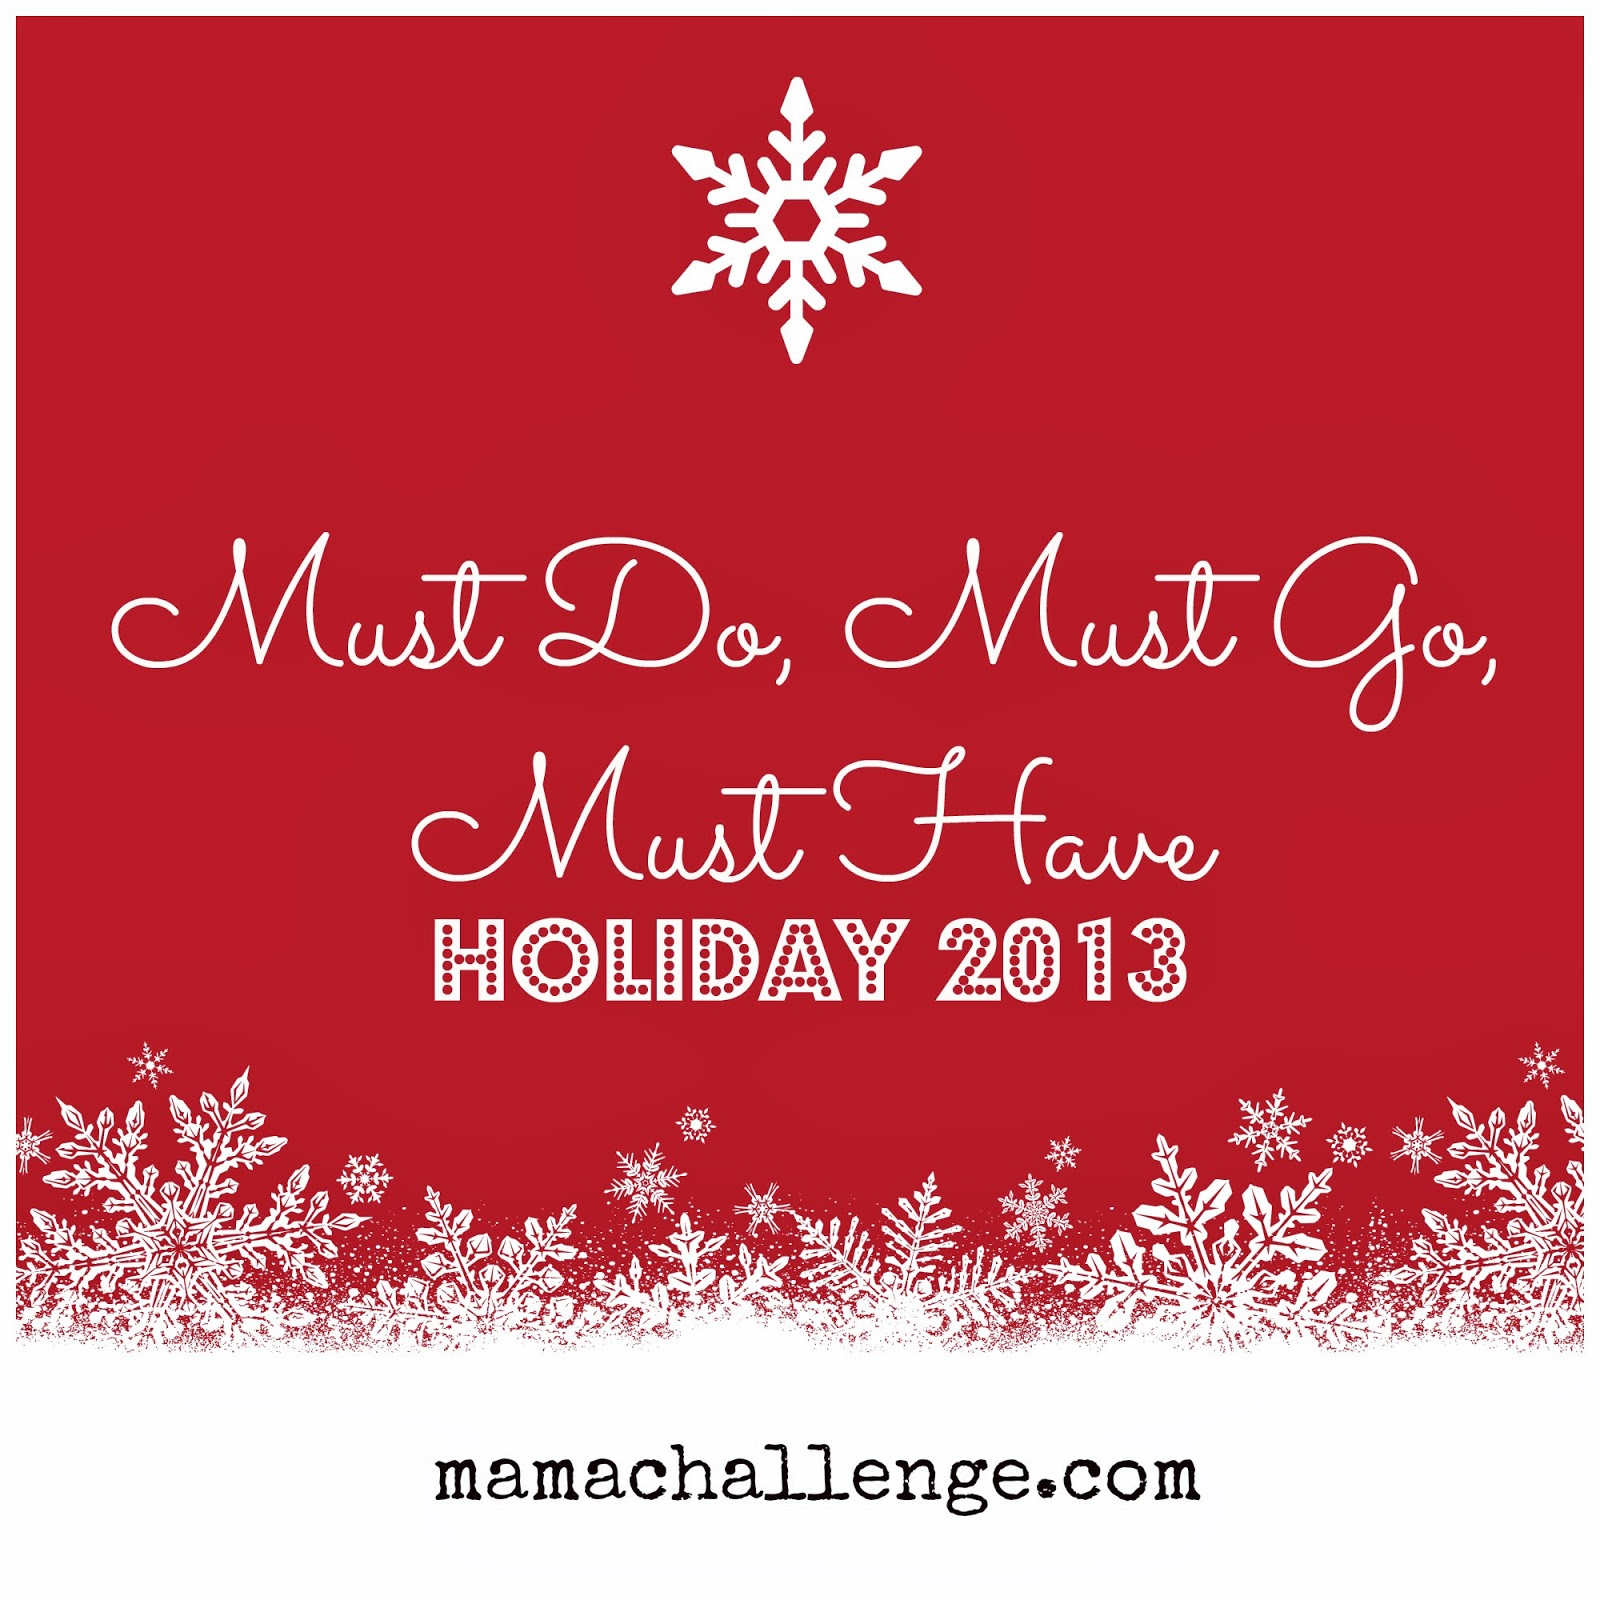 Holidays Archives - Page 15 of 23 - mamachallenge   Real Solutions ...